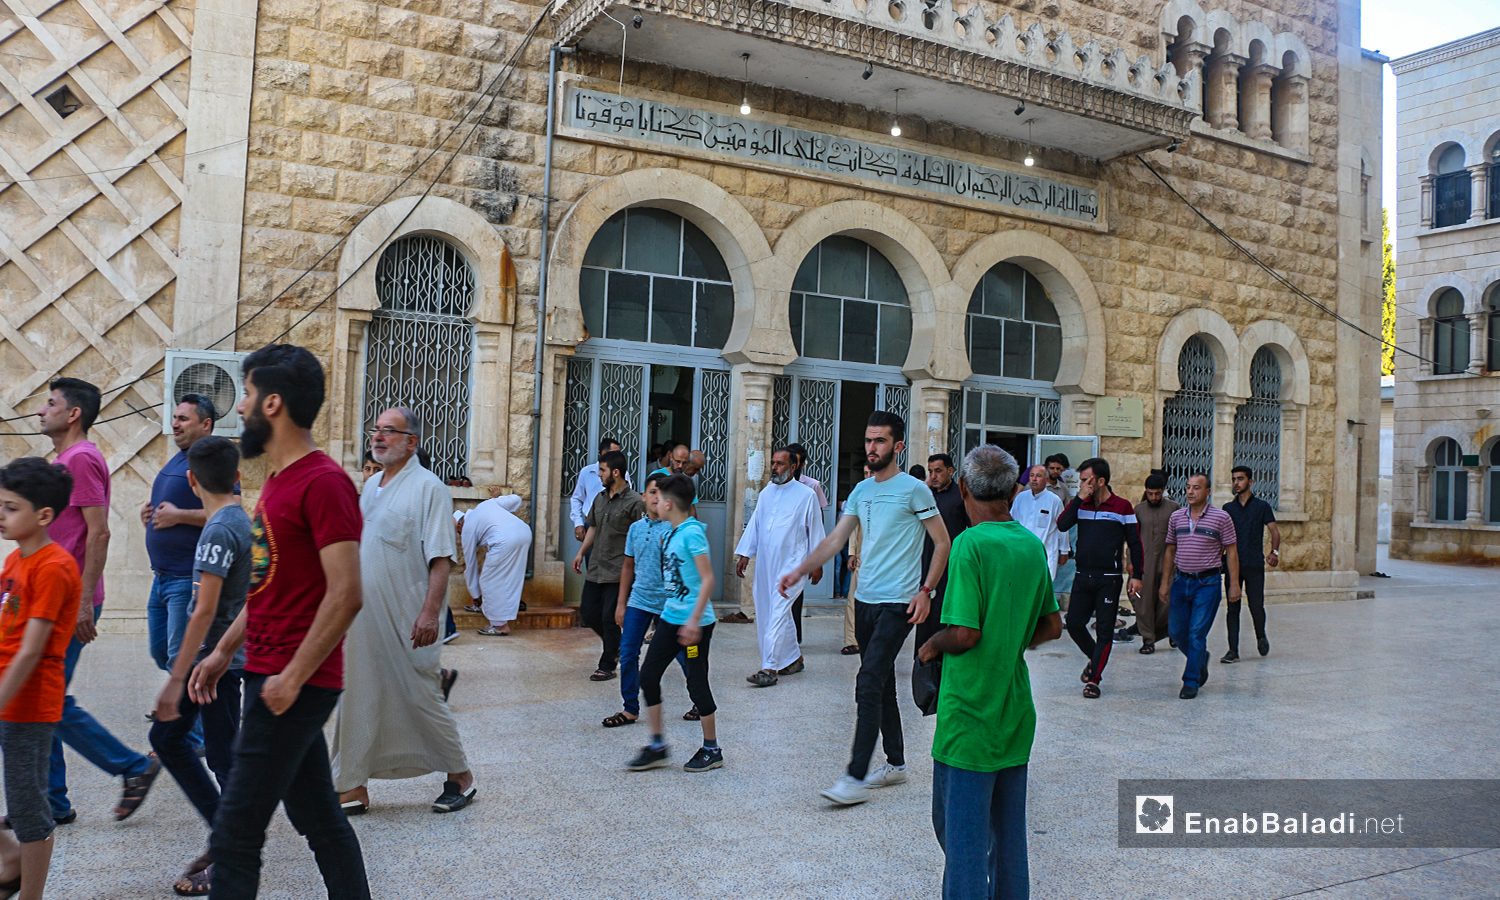 People exiting  a mosque after the end of the Eid al-Adha prayer in Dabiq town in northern Aleppo countryside – 31 July 2020 (Enab Baladi / Abdul Salam Majan)